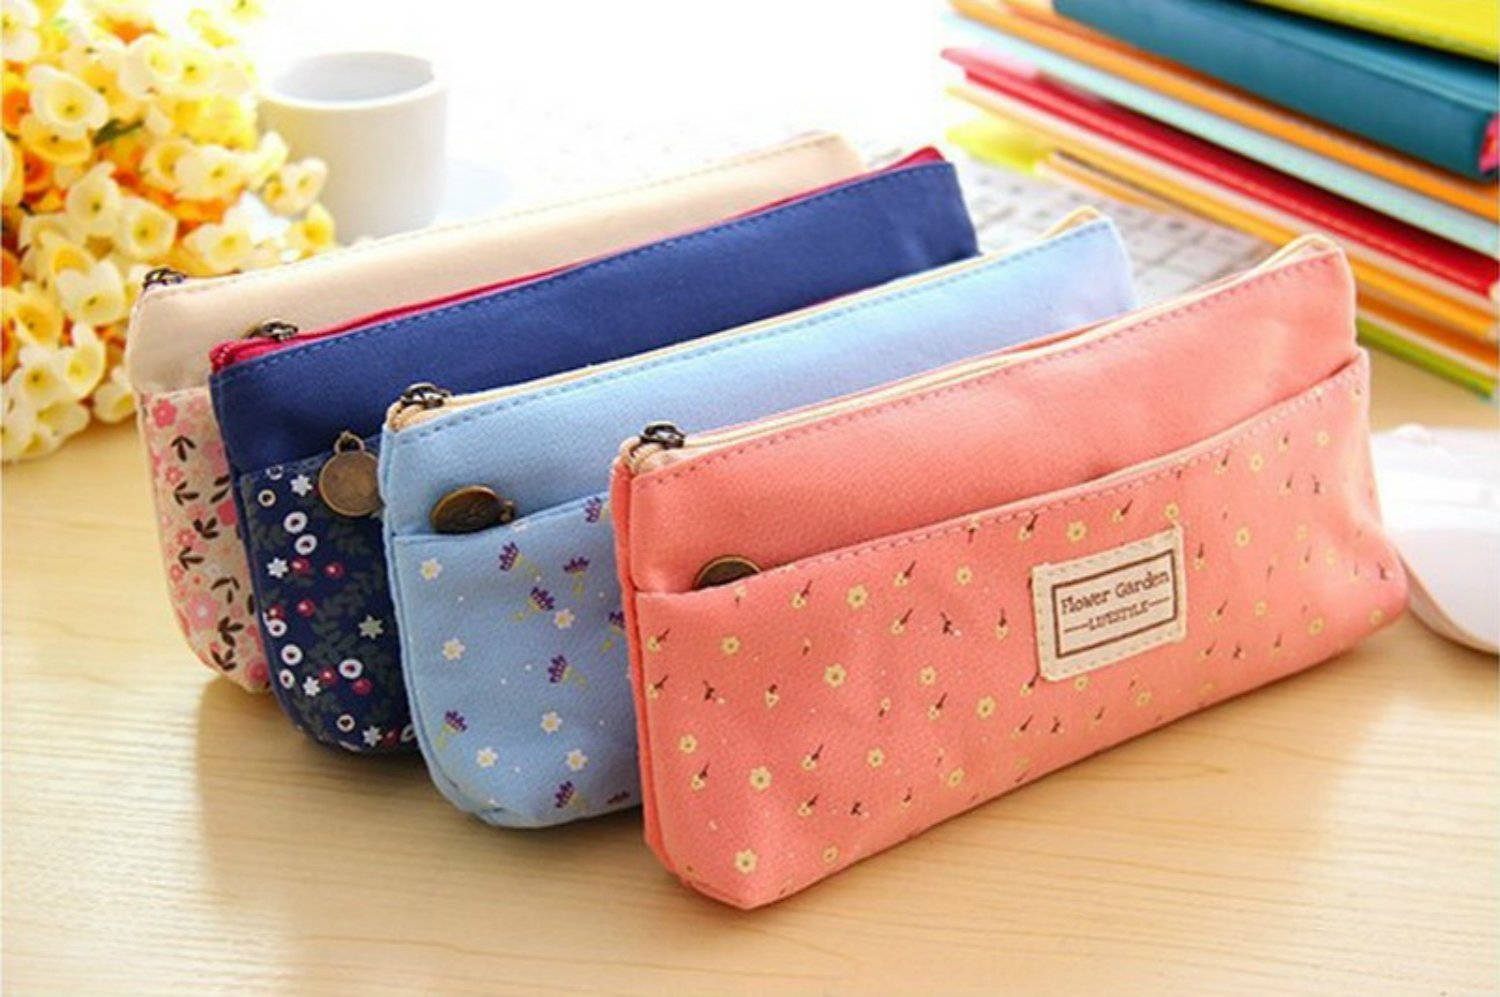 ONOR-Tech Lovely Cute Multi-Fuctional Pencil/Pen Case Bag Pounch Cosmetic Makeup Bag Case